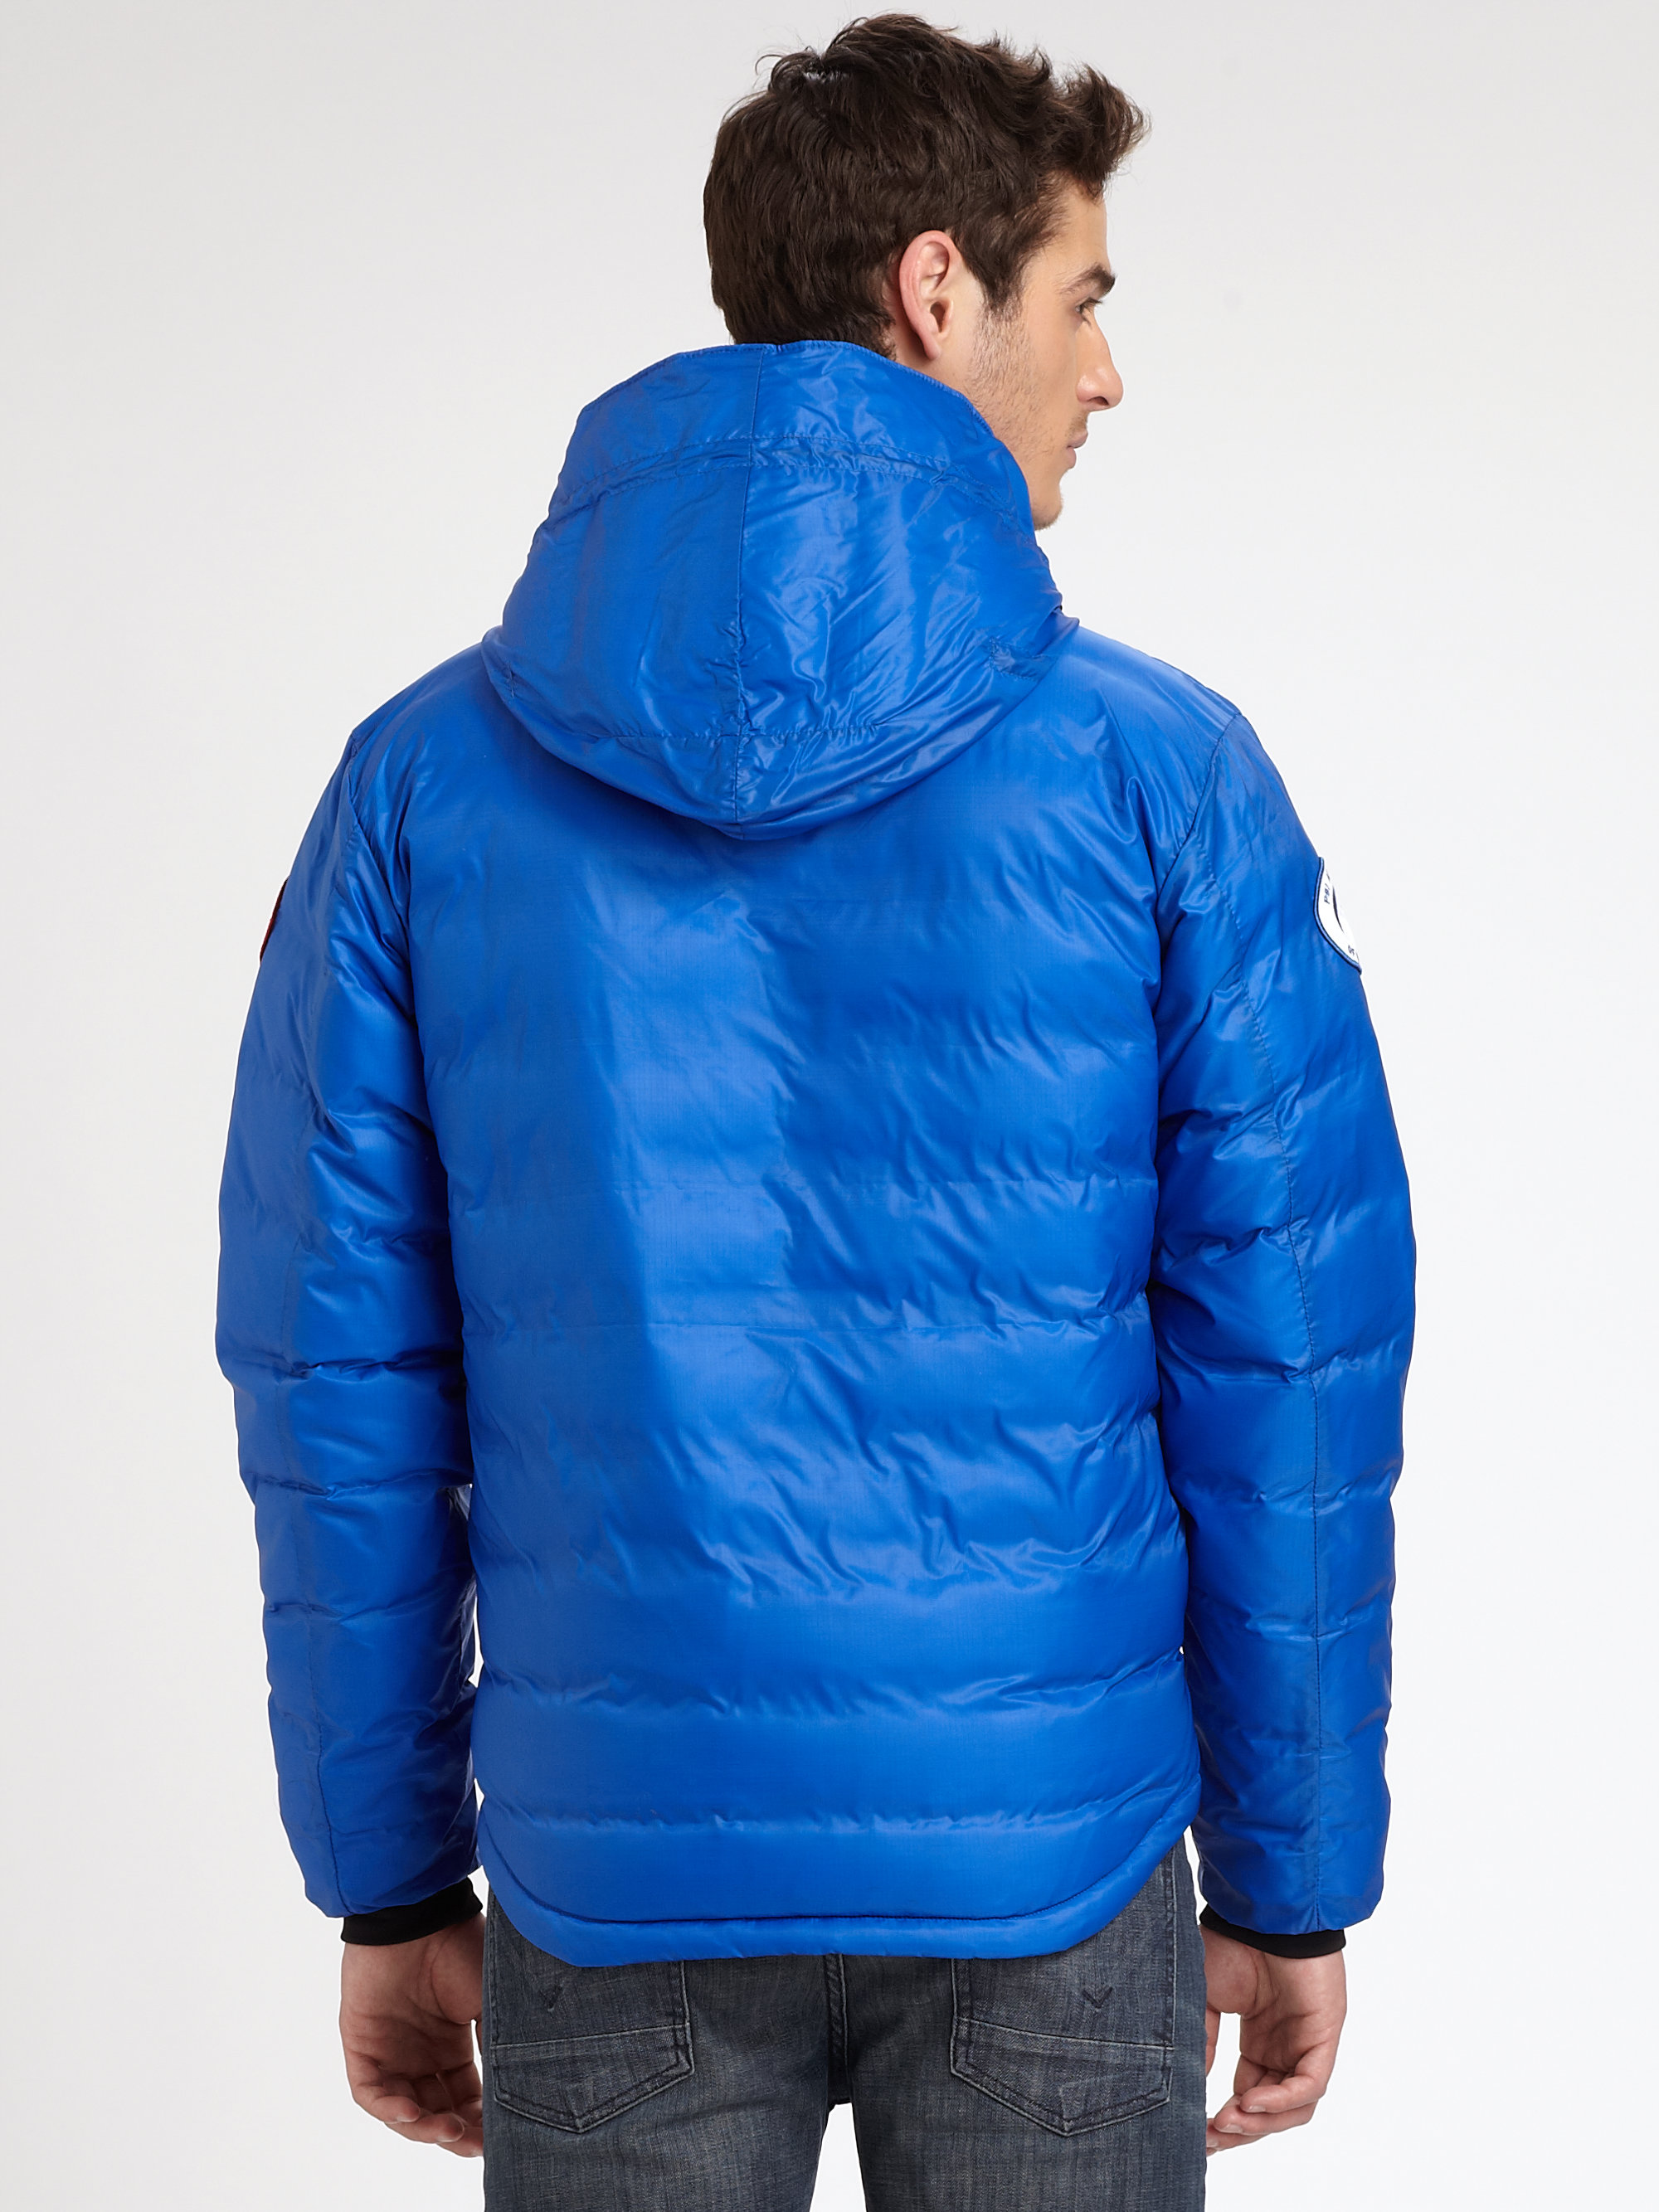 Canada Goose kensington parka sale cheap - Canada goose Pbi Lodge Hoody in Blue for Men (ROYAL BLUE) | Lyst